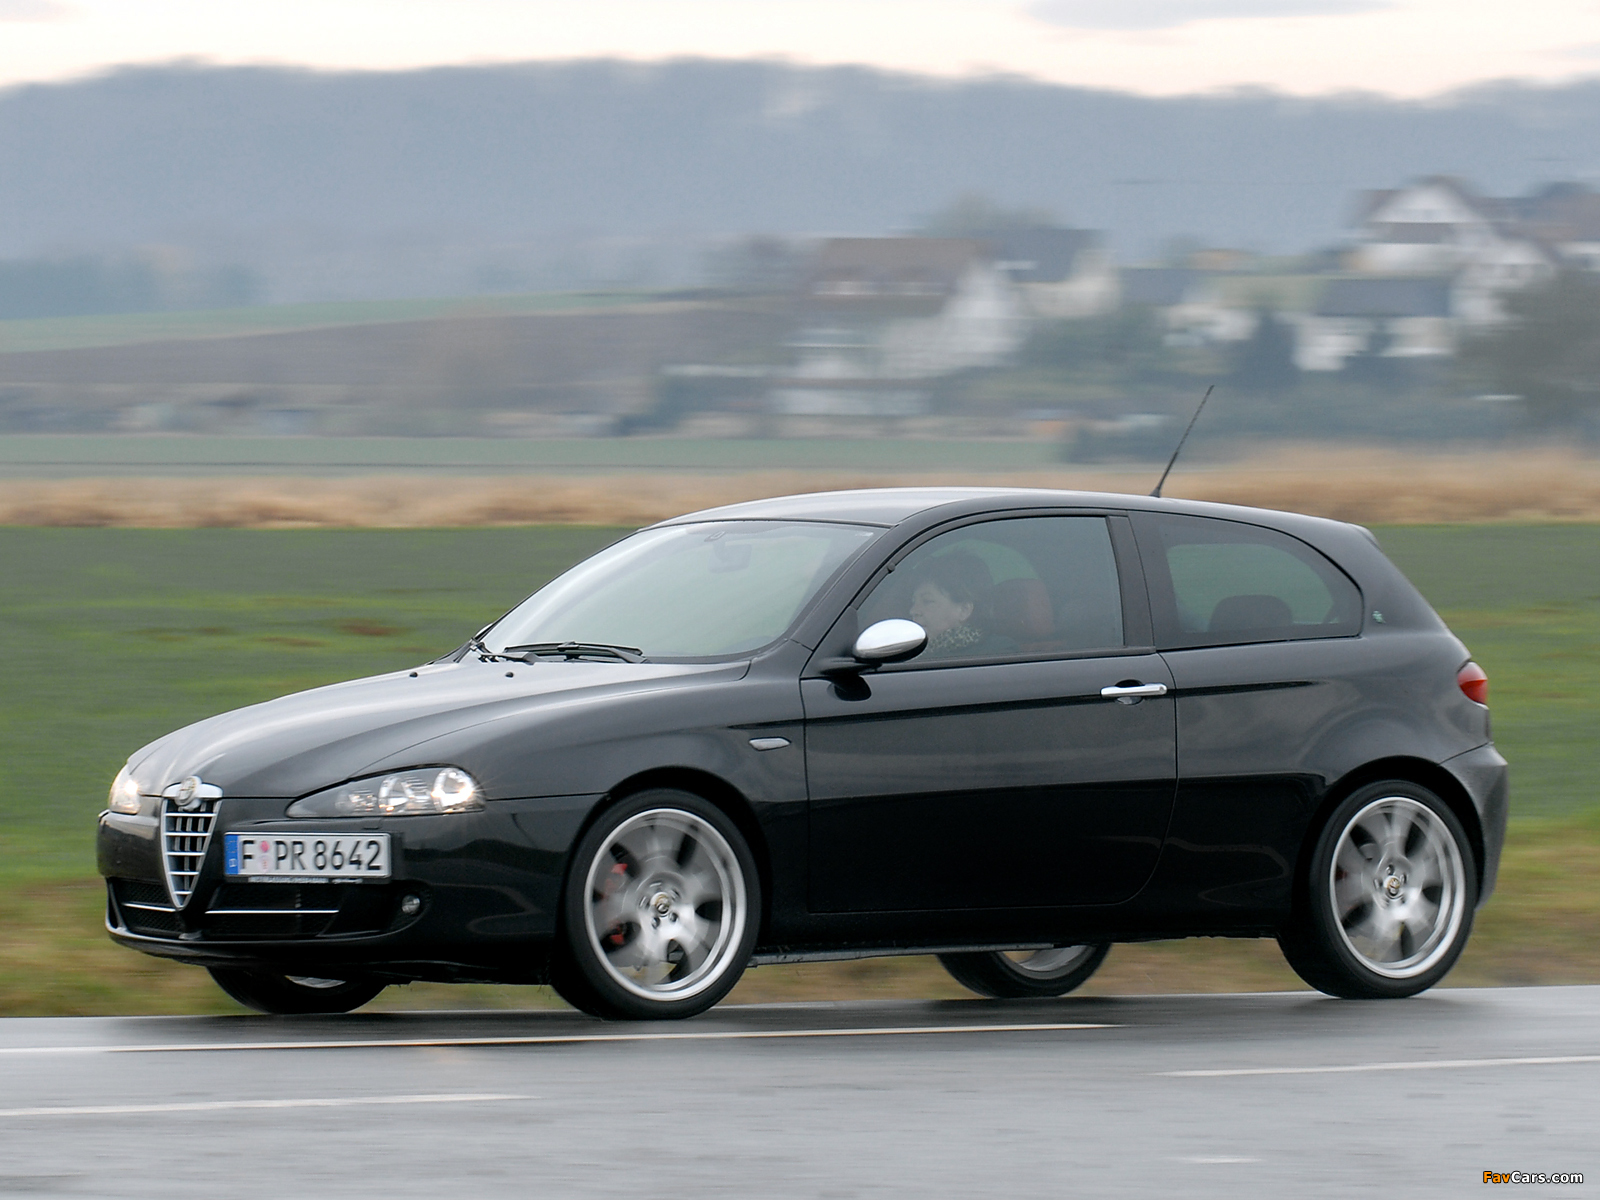 alfa romeo 147 2008 models - auto-database